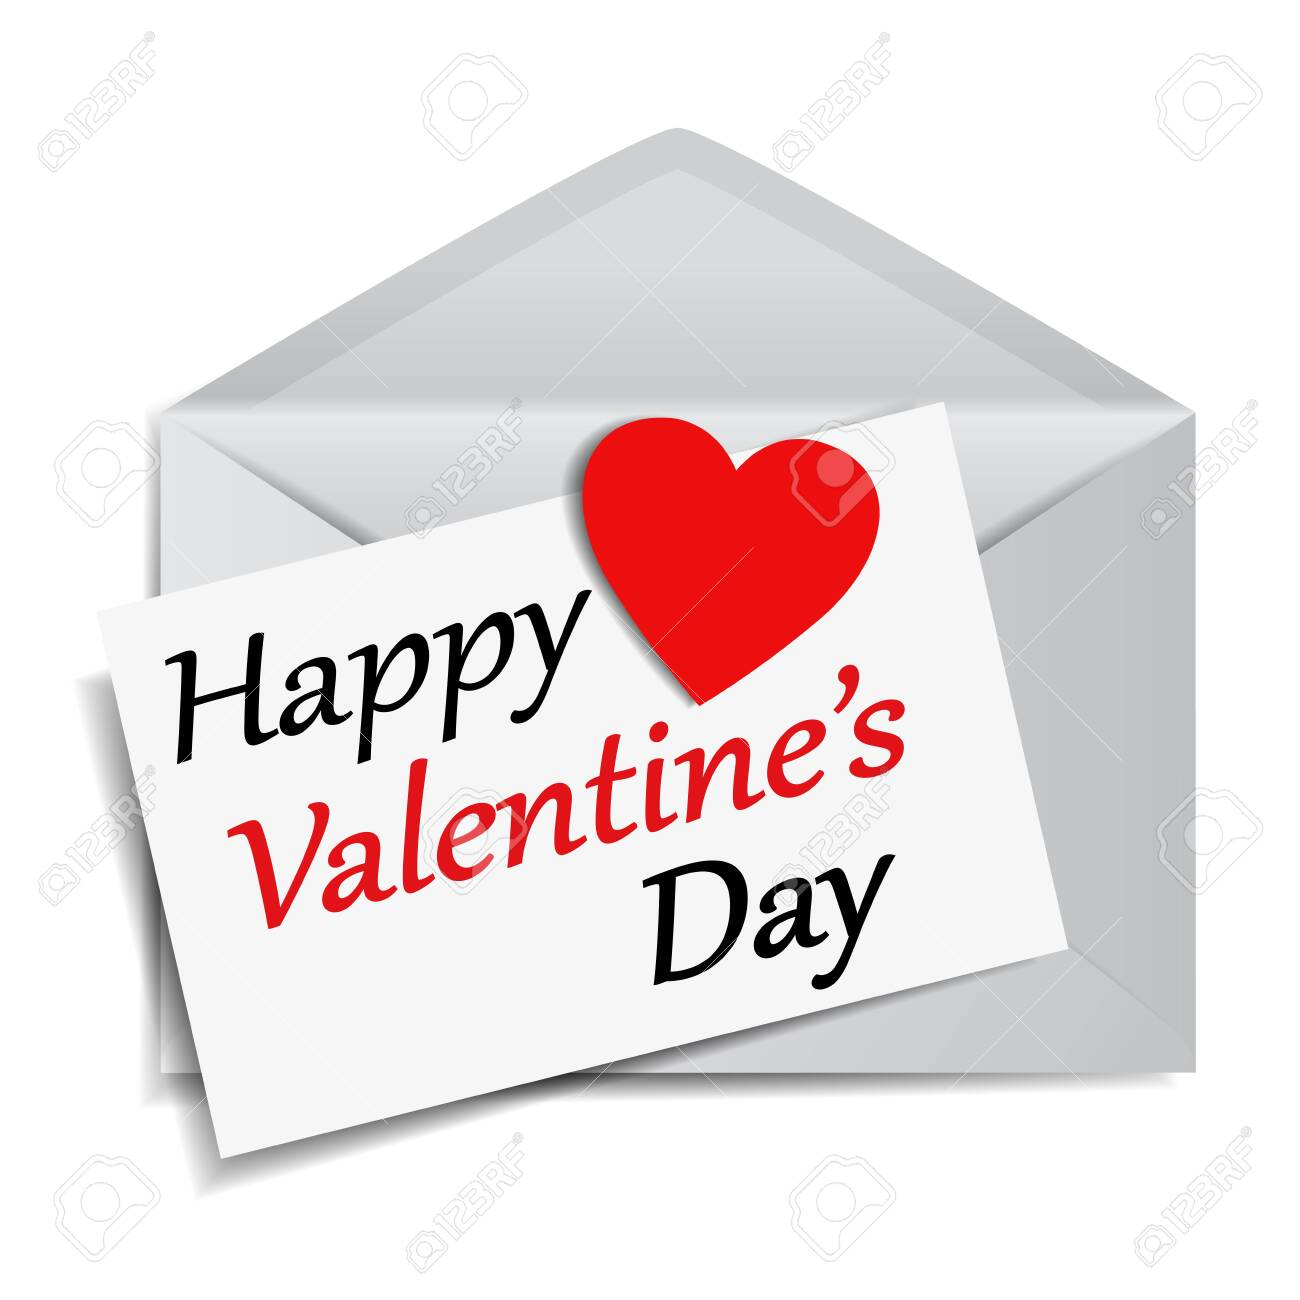 Happy Valentine's Day message and text on note paper with a red heart shaped paper on a mail envelope EPS 10 vector illustration on white background. - 123514138